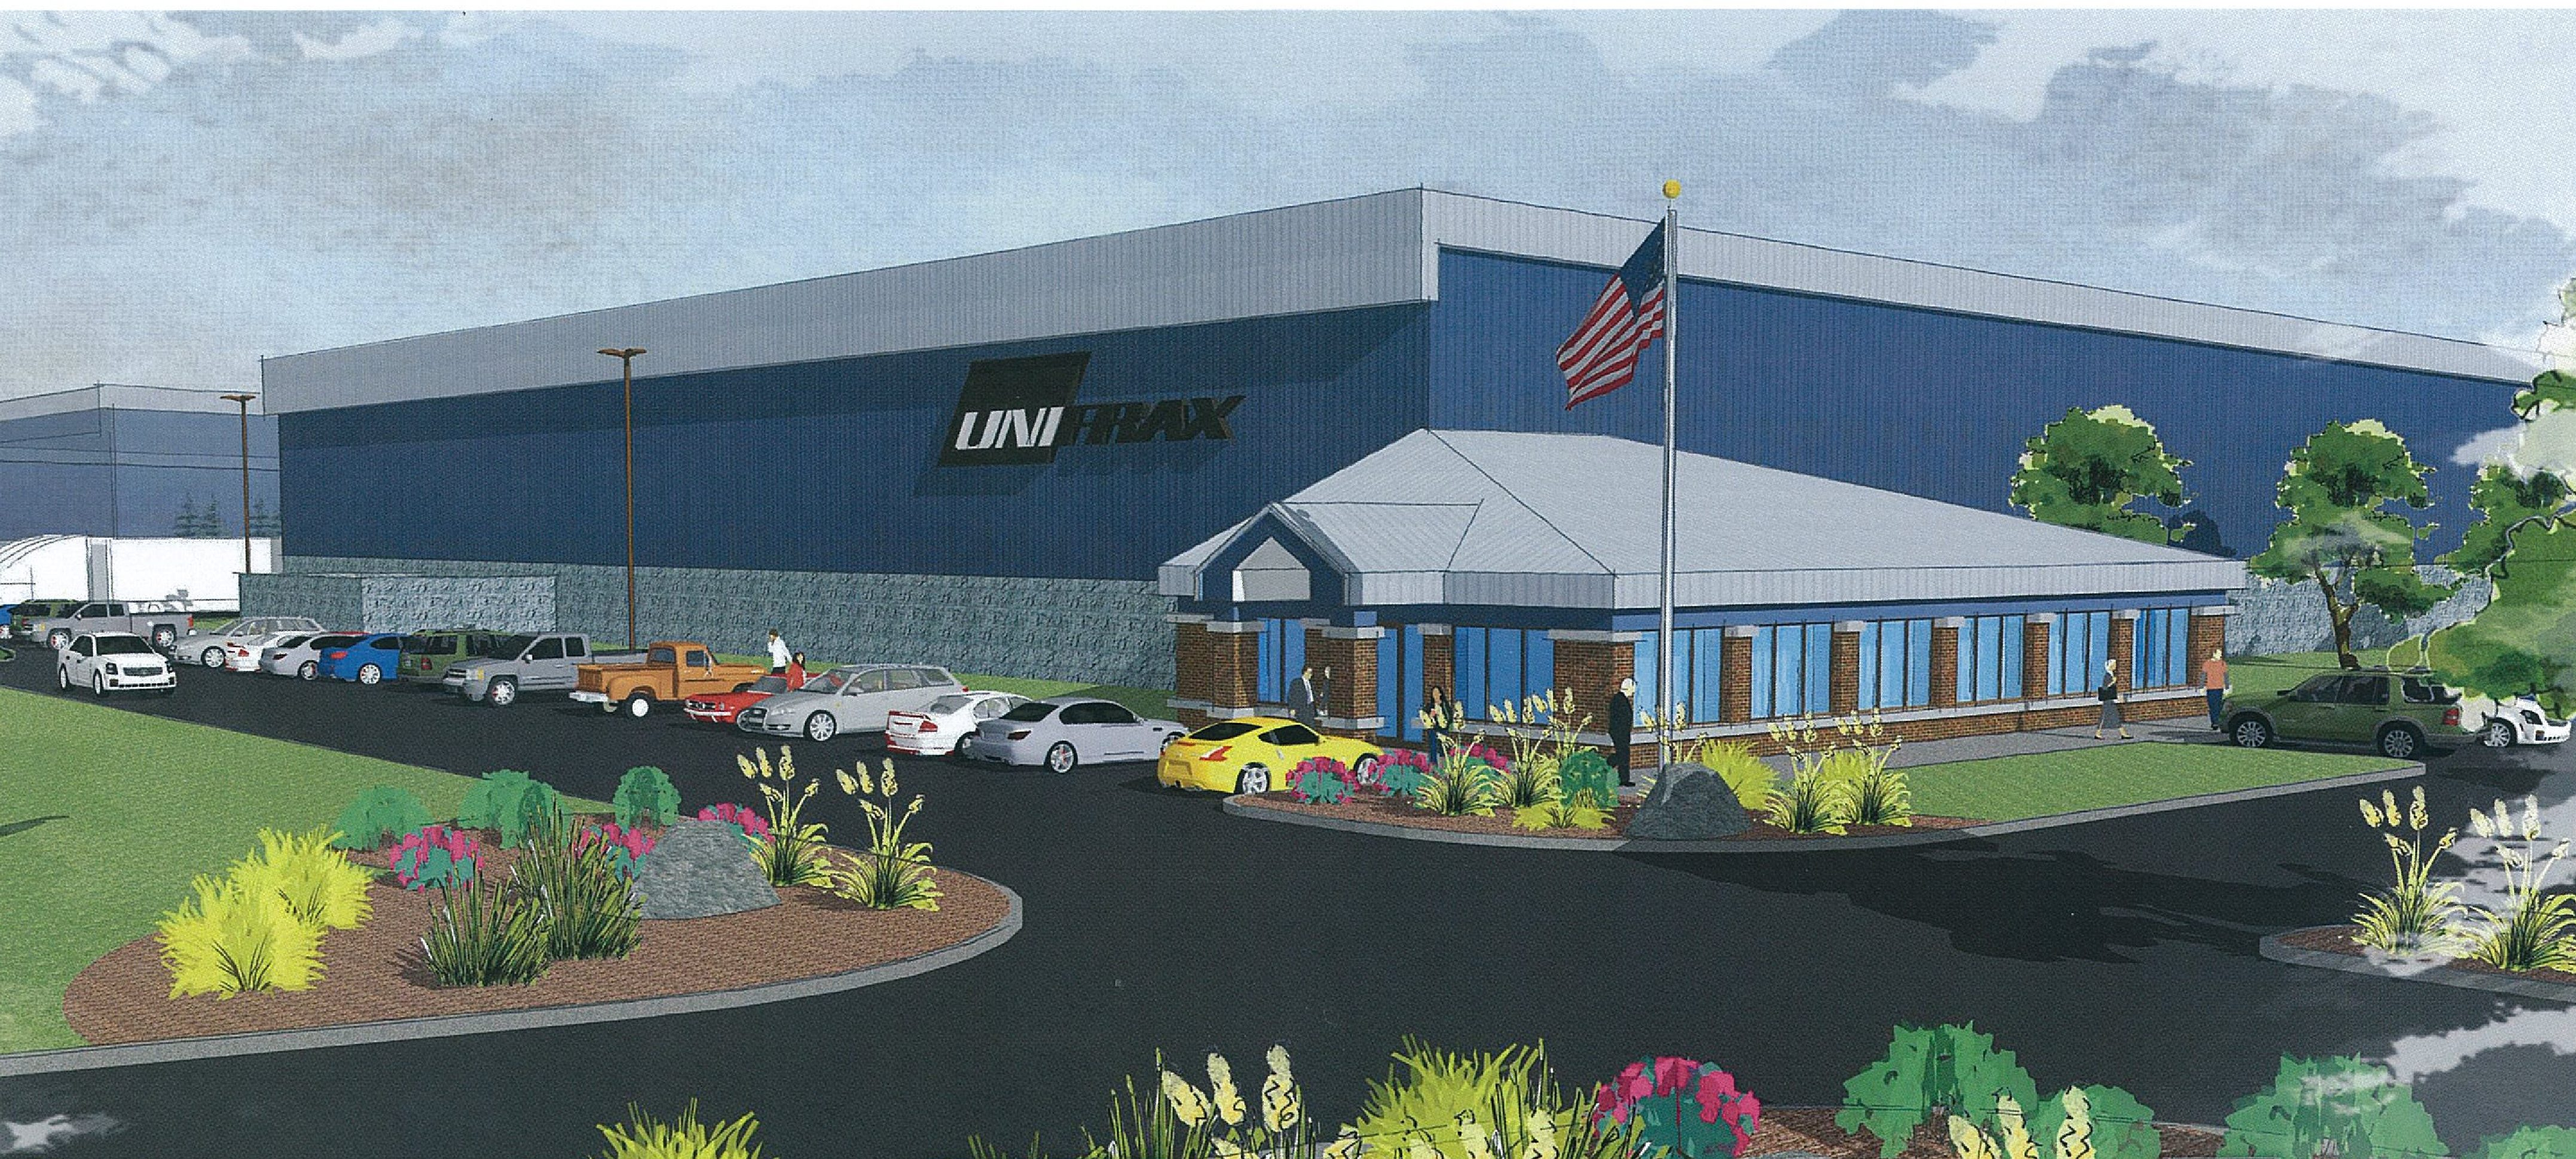 This is a rendering of an $18 million manufacturing facility Unifrax Corp. is planning to build in the Town of Tonawanda. The company will ask the town Planning Board on Feb. 1, 2017 for a preliminary site plan review on its proposed 83,000-square-foot building.